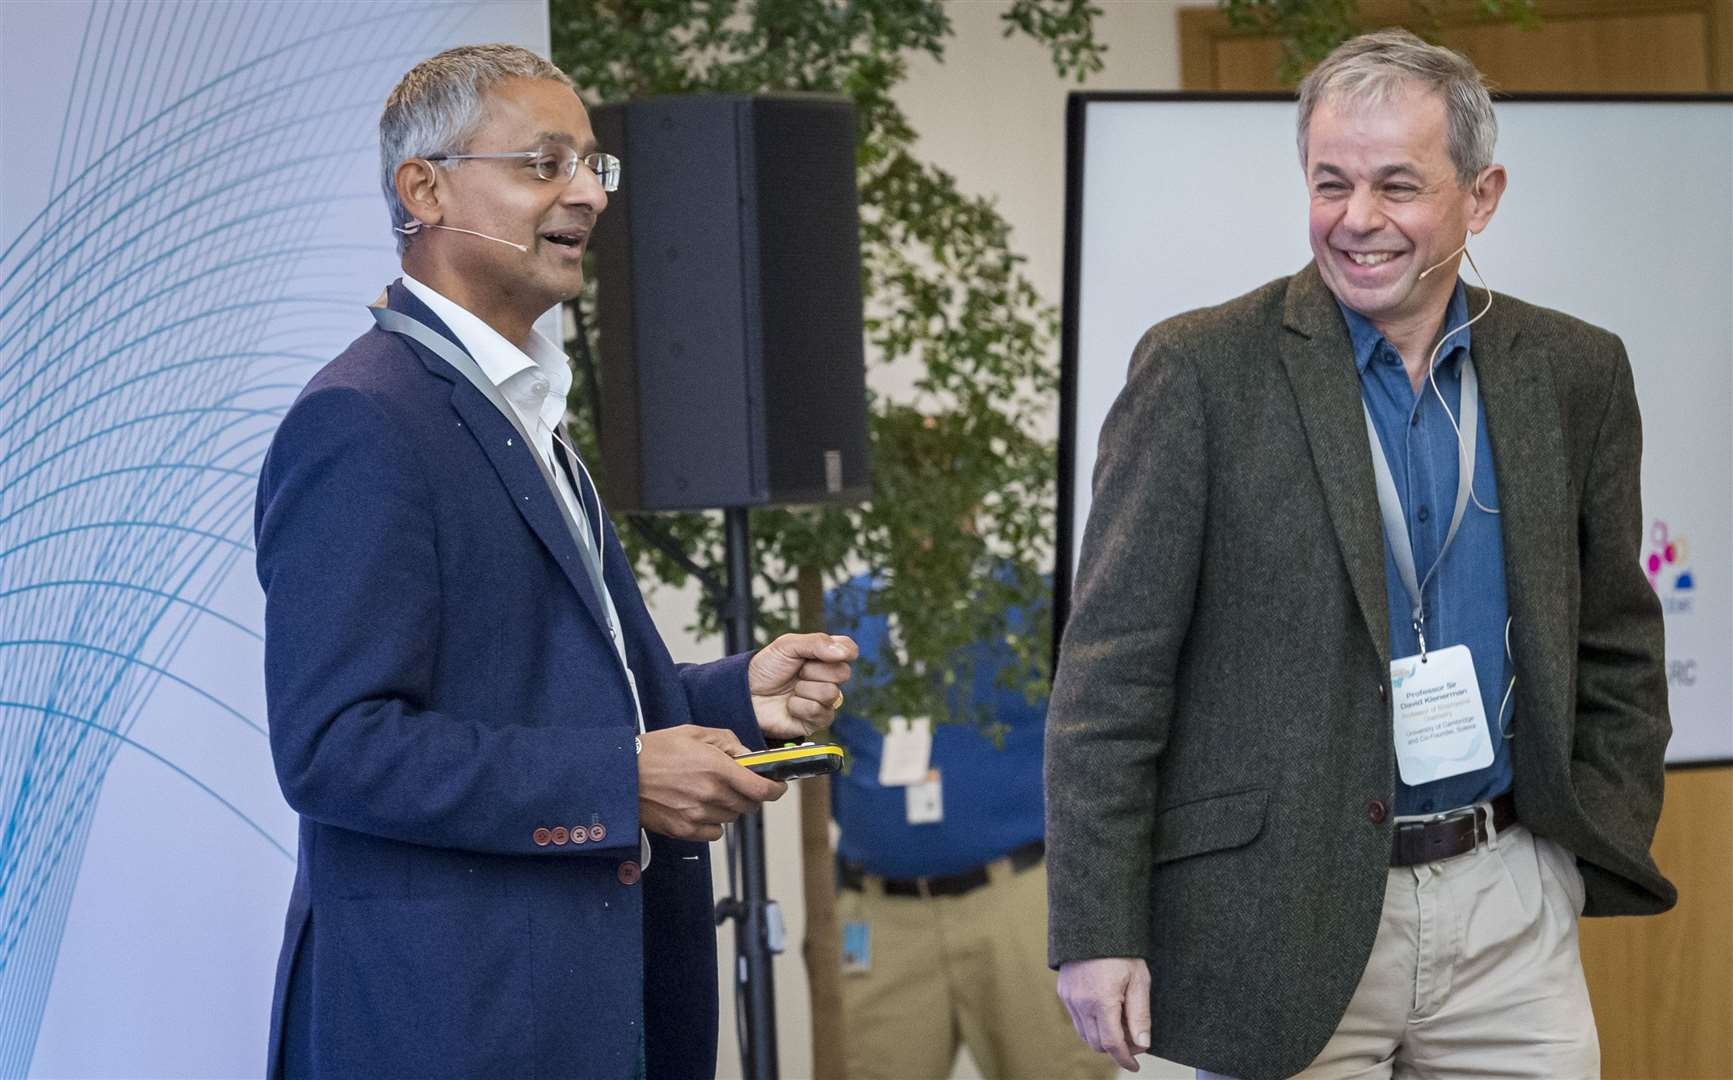 Professor Sir Shankar Balasubramanian and Professor Sir David Klenerman, co-founders of Solexa. Picture: Keith Heppell